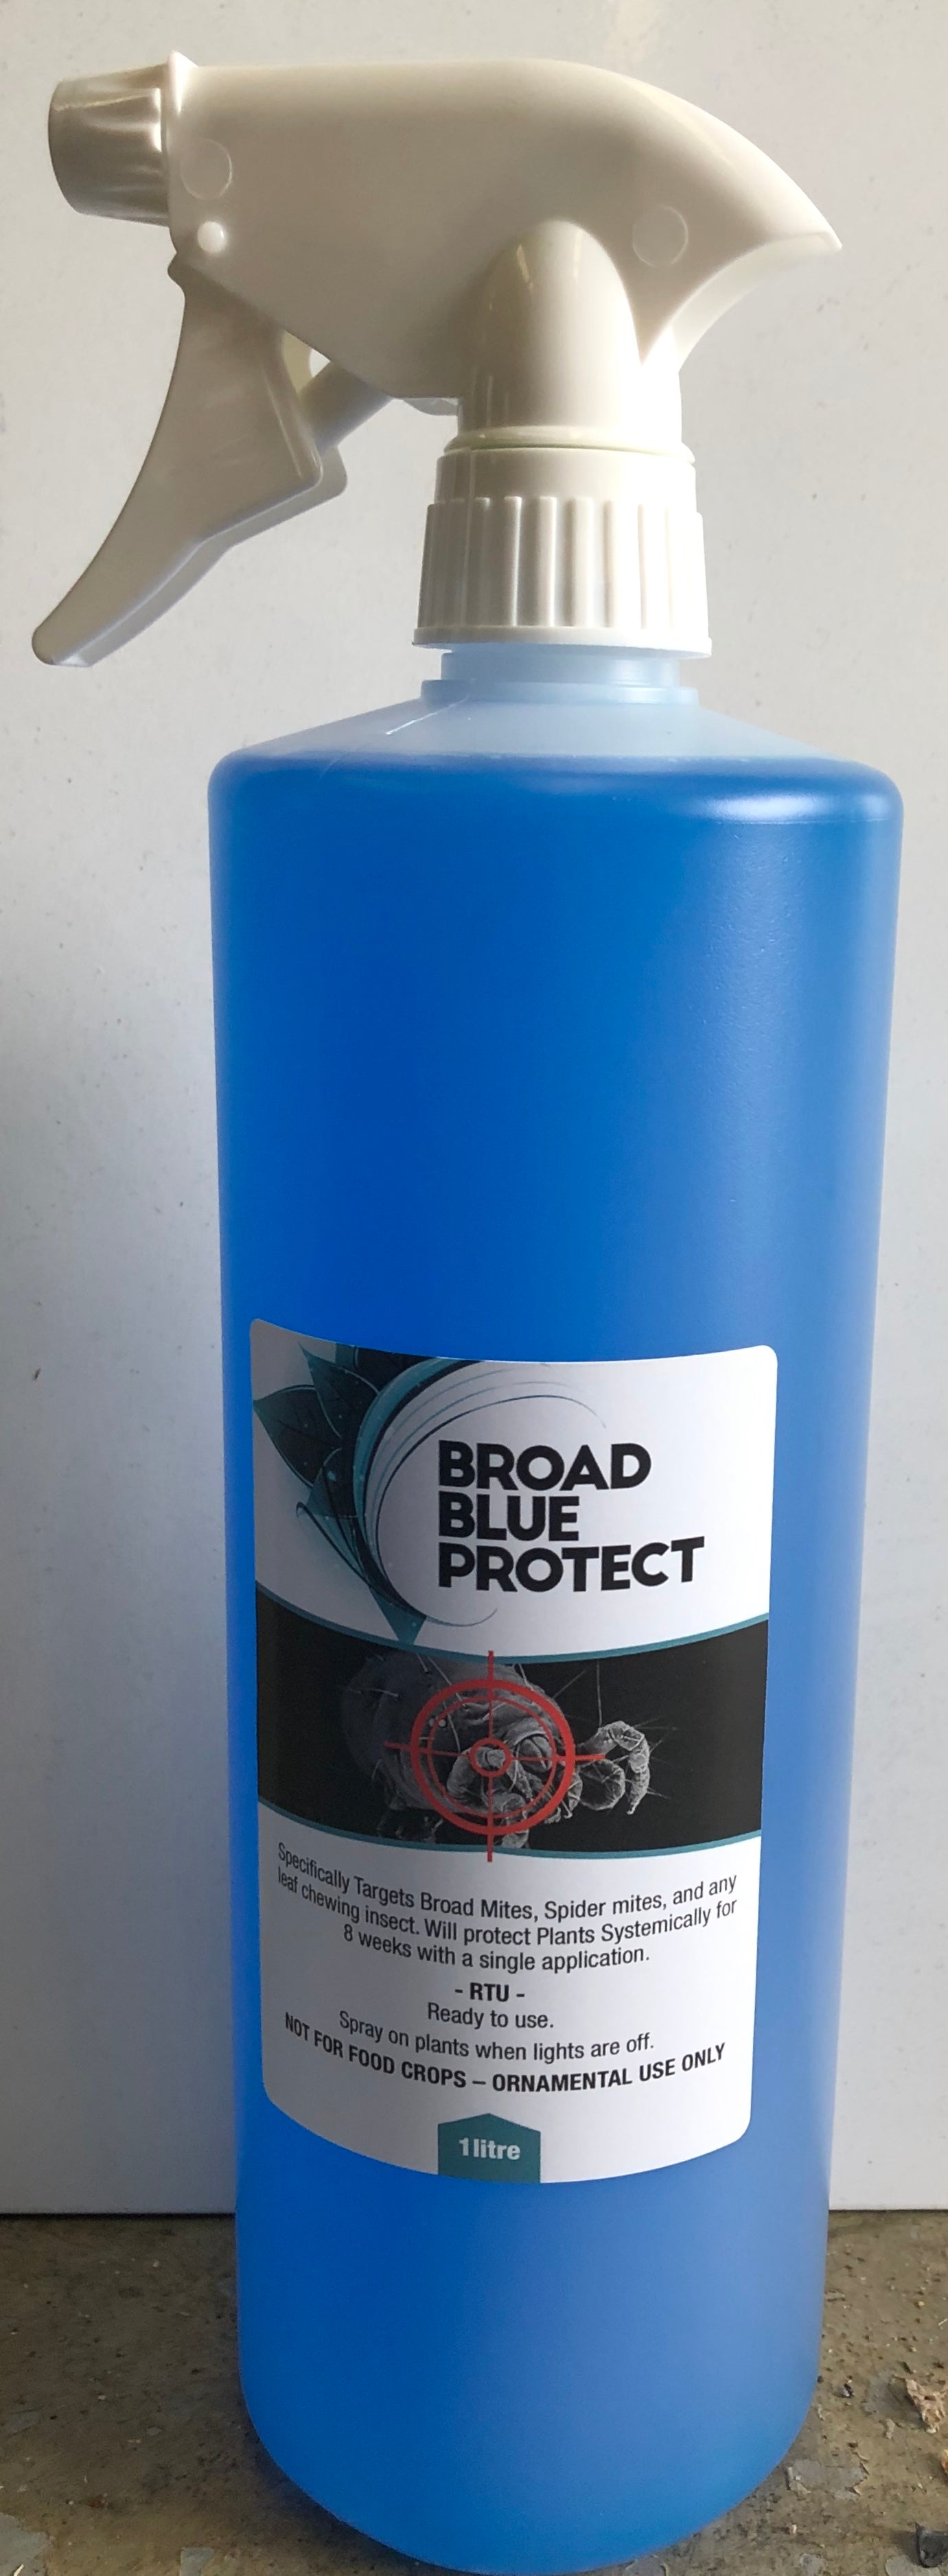 Broad Blue Protect Mite Kill 1L | Ready to Use | Hydroponic Pest Control